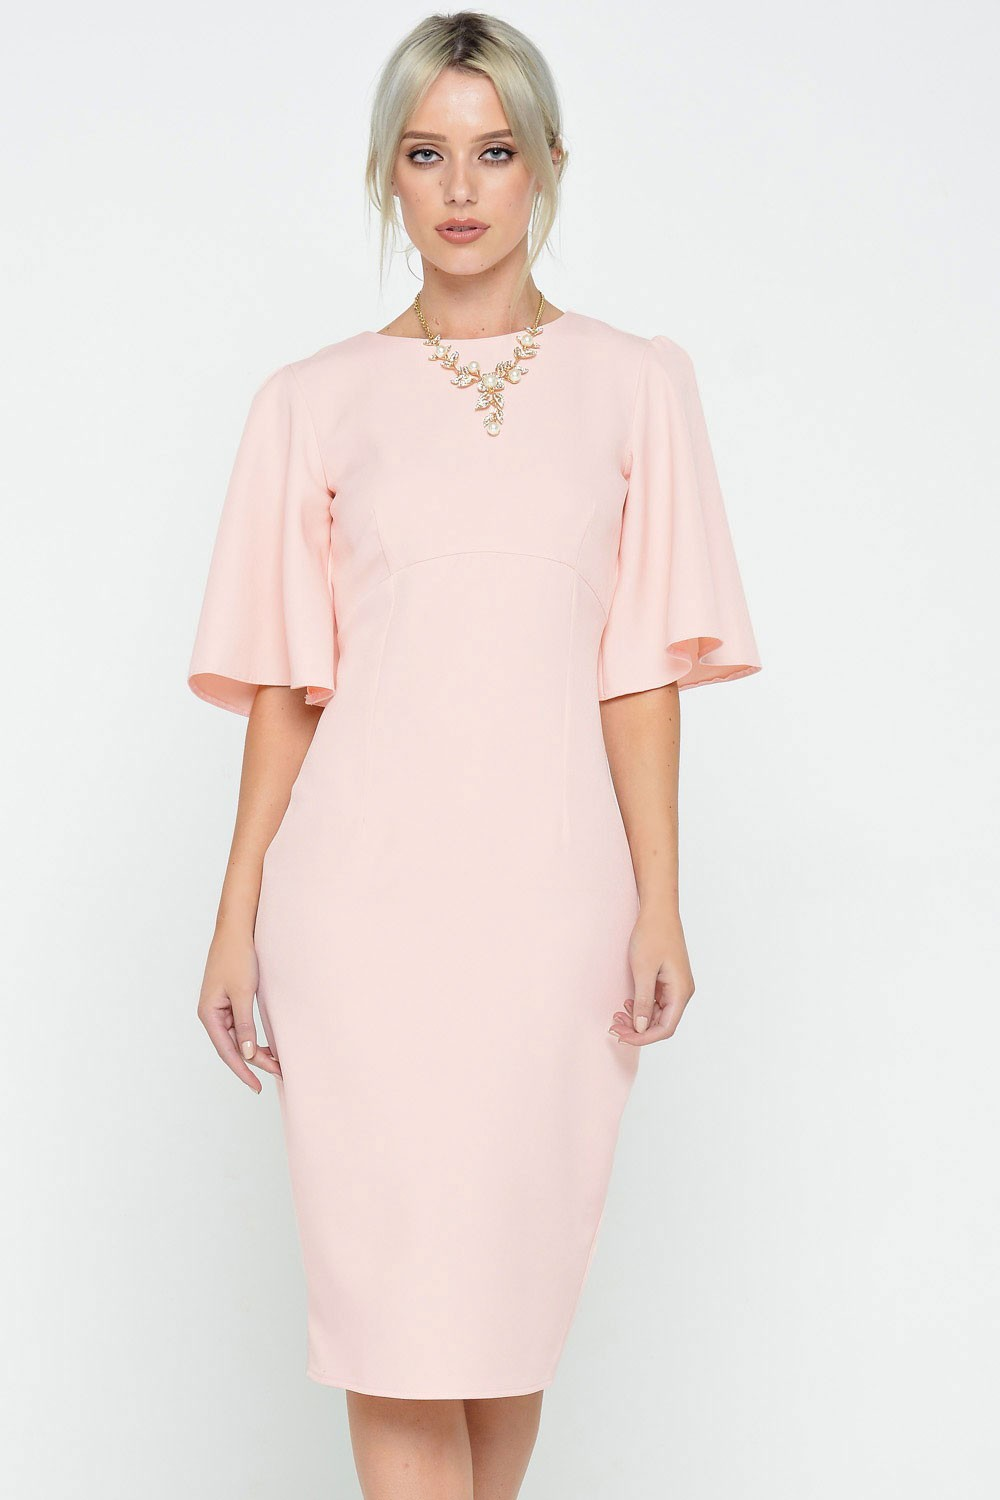 Ad Lib Emma Cape Sleeve Midi Dress In Baby Pink Iclothing